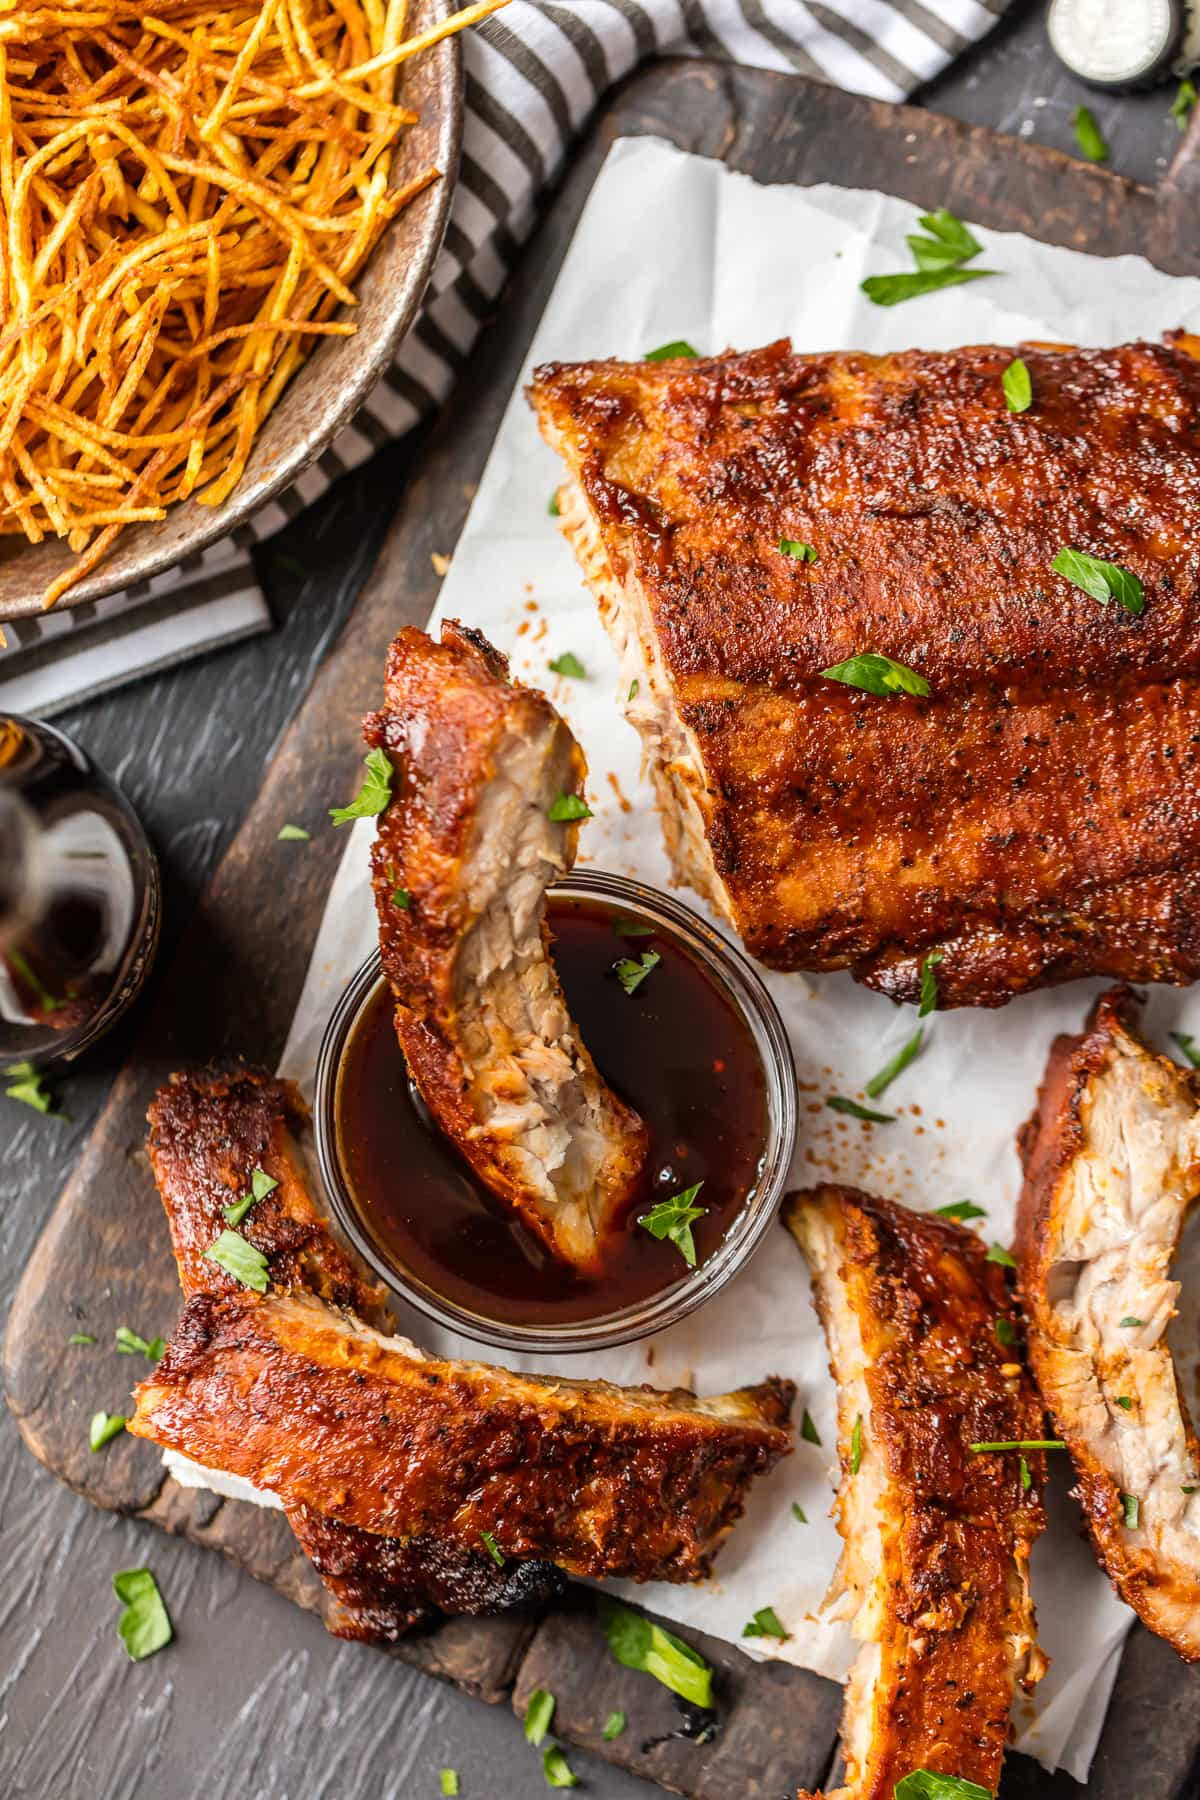 Easy Oven baked ribs, one rib dipped in bbq sauce